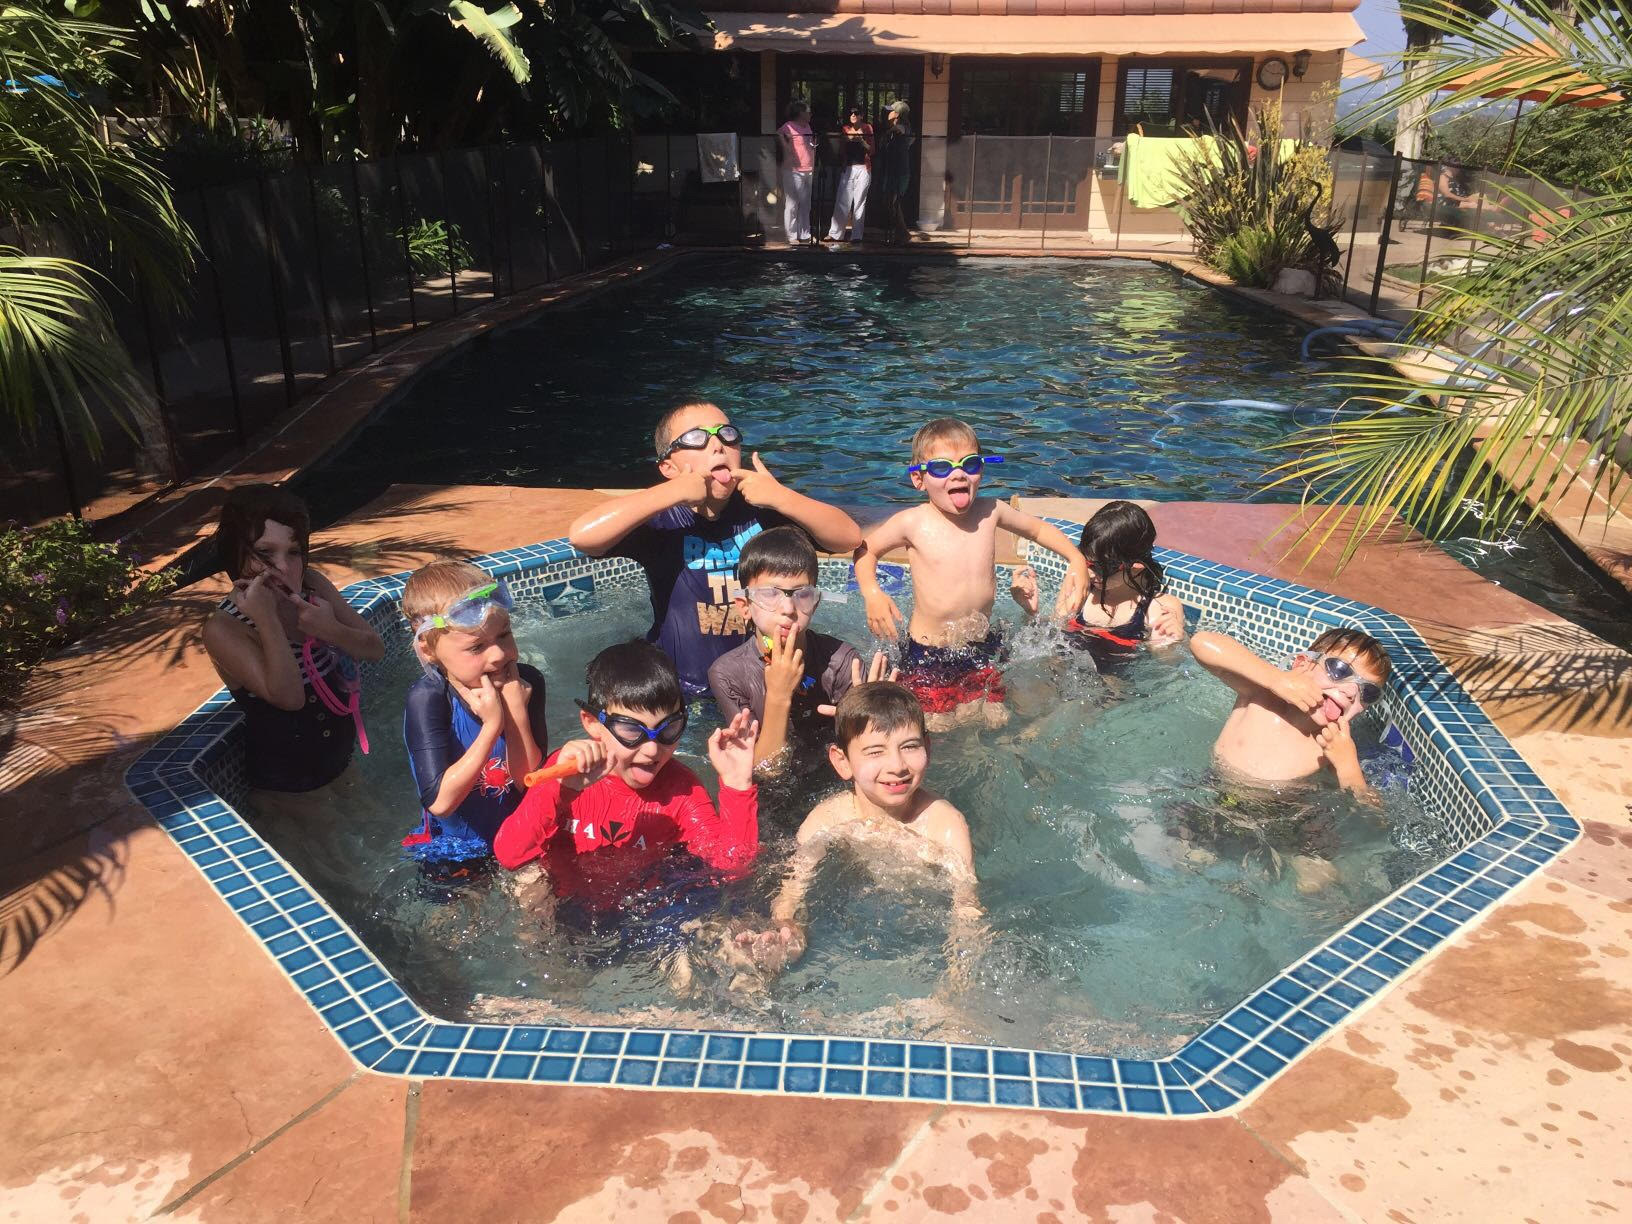 Grandkids and cousins in jacuzzi having Labor Day fun